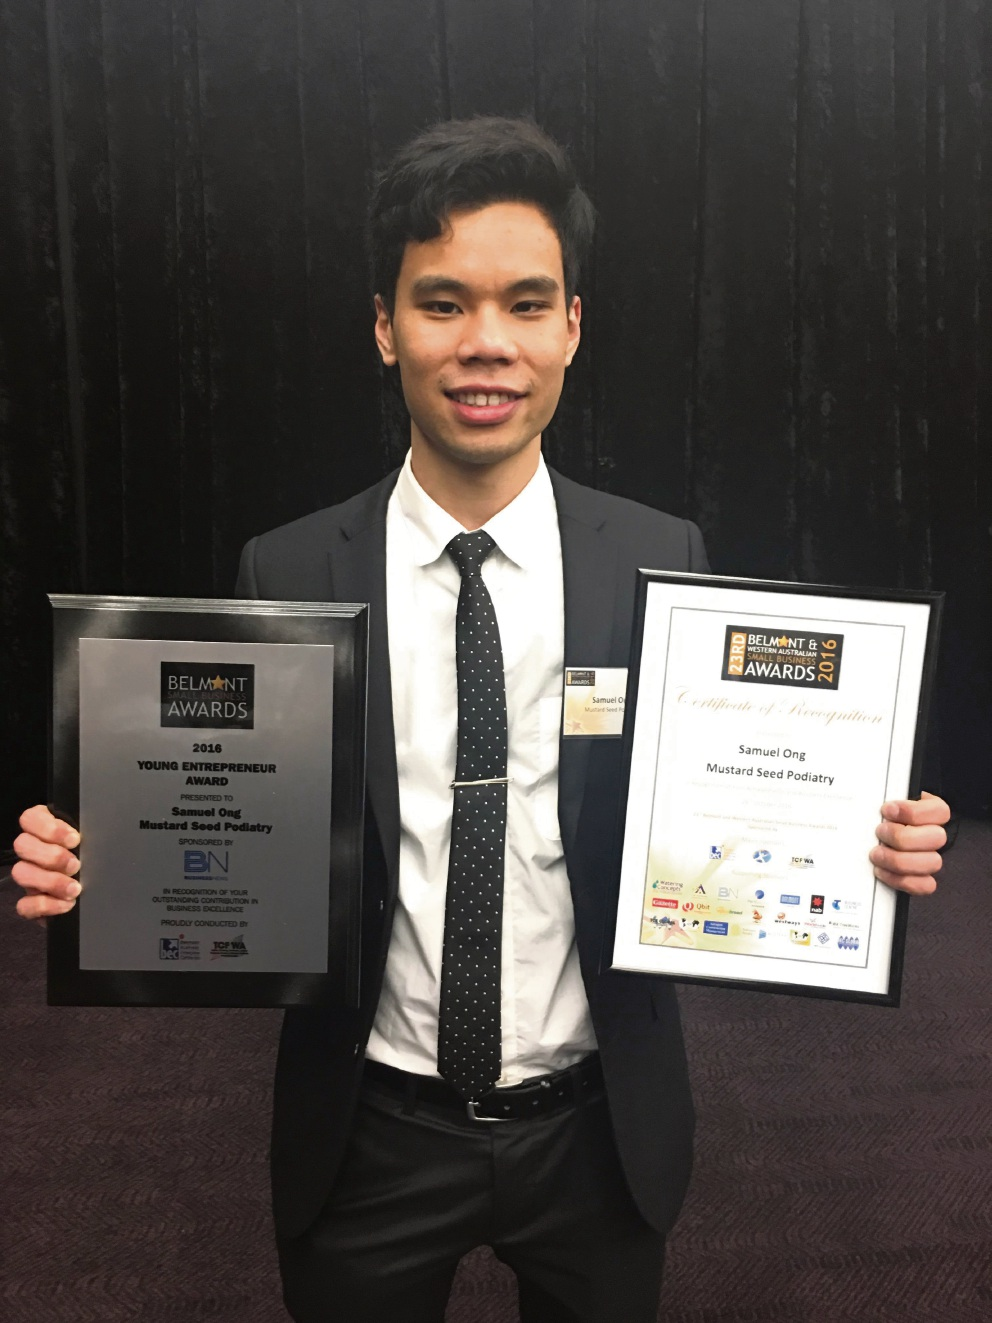 Bayswater podiatry practice up for top business award